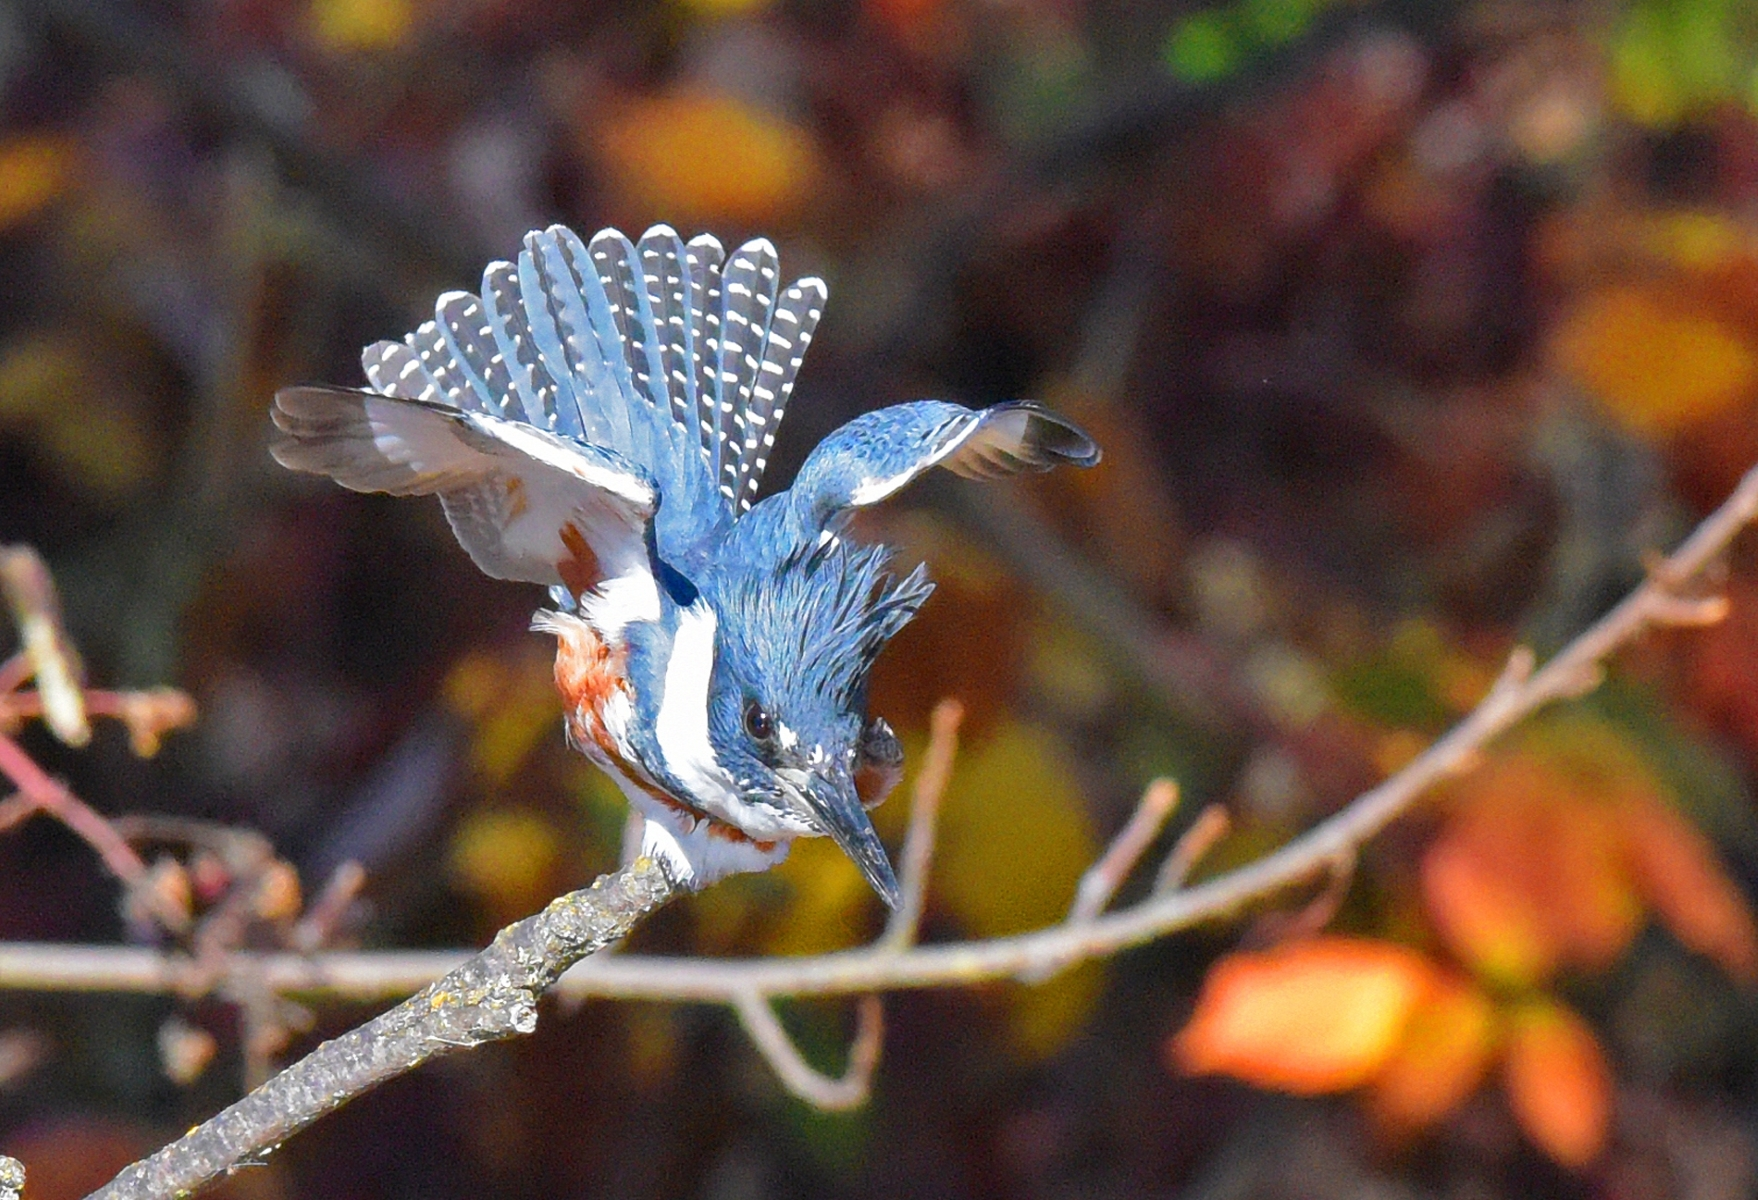 'Belted Kingfisher has spotted prey' (NM Best) by Karl Hoenke - RO